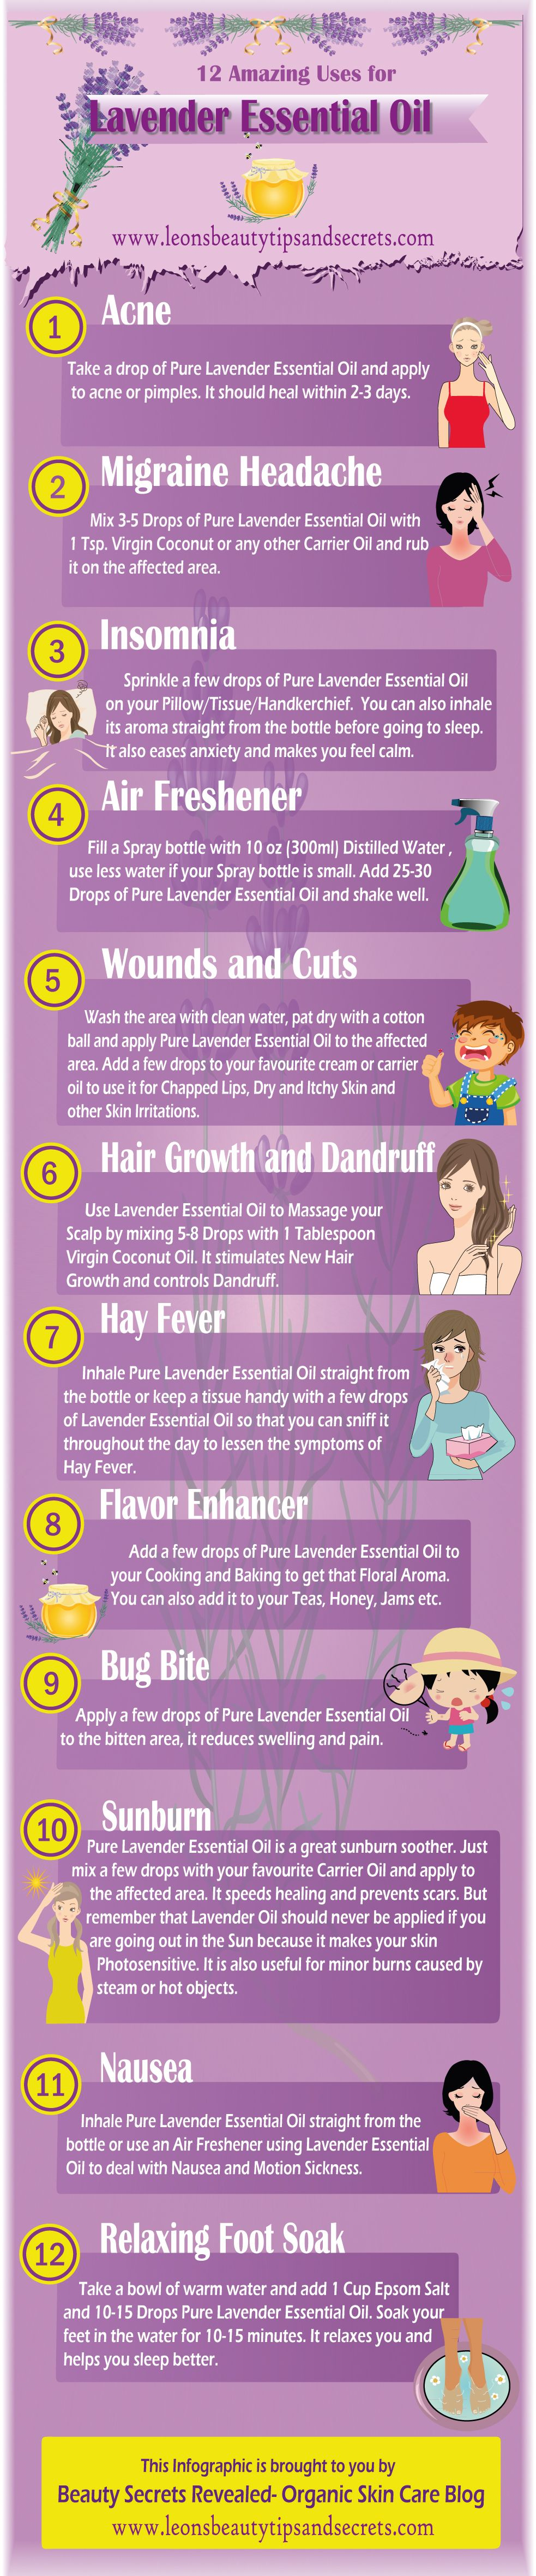 12-amazing-uses-for-lavender-essential-oil_520f7876bc2f7